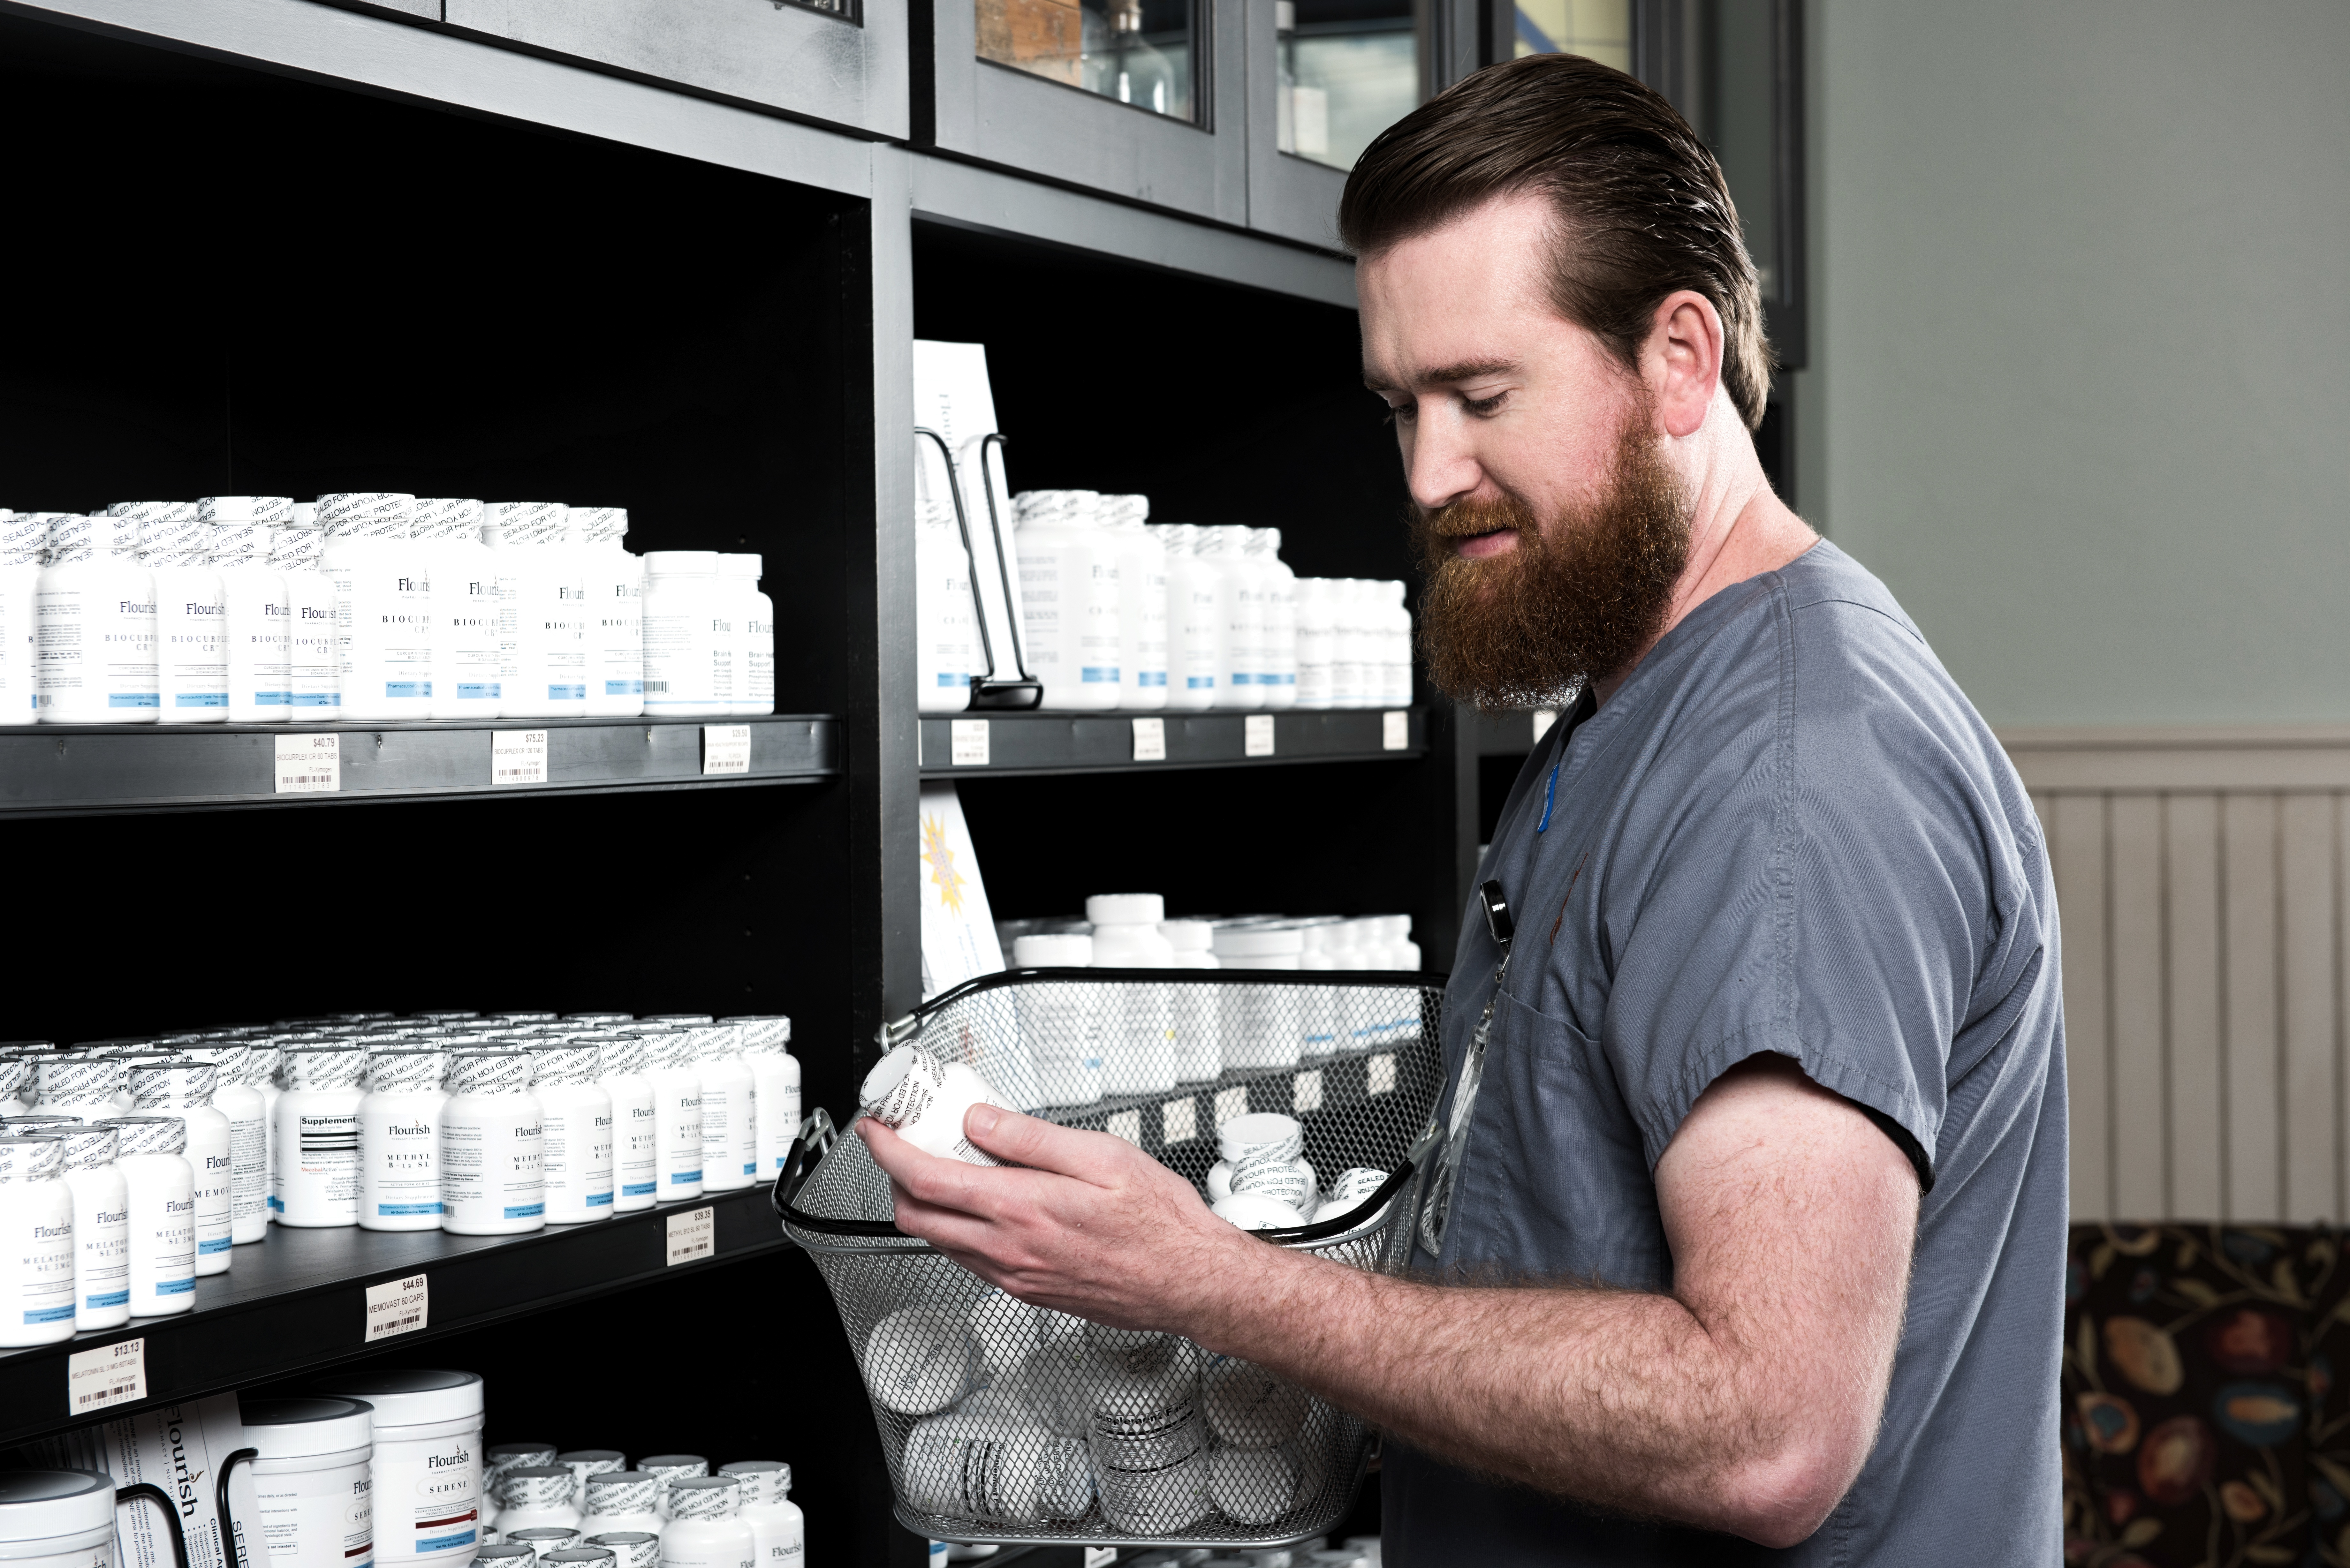 Community pharmacist receiving and shelving inventory